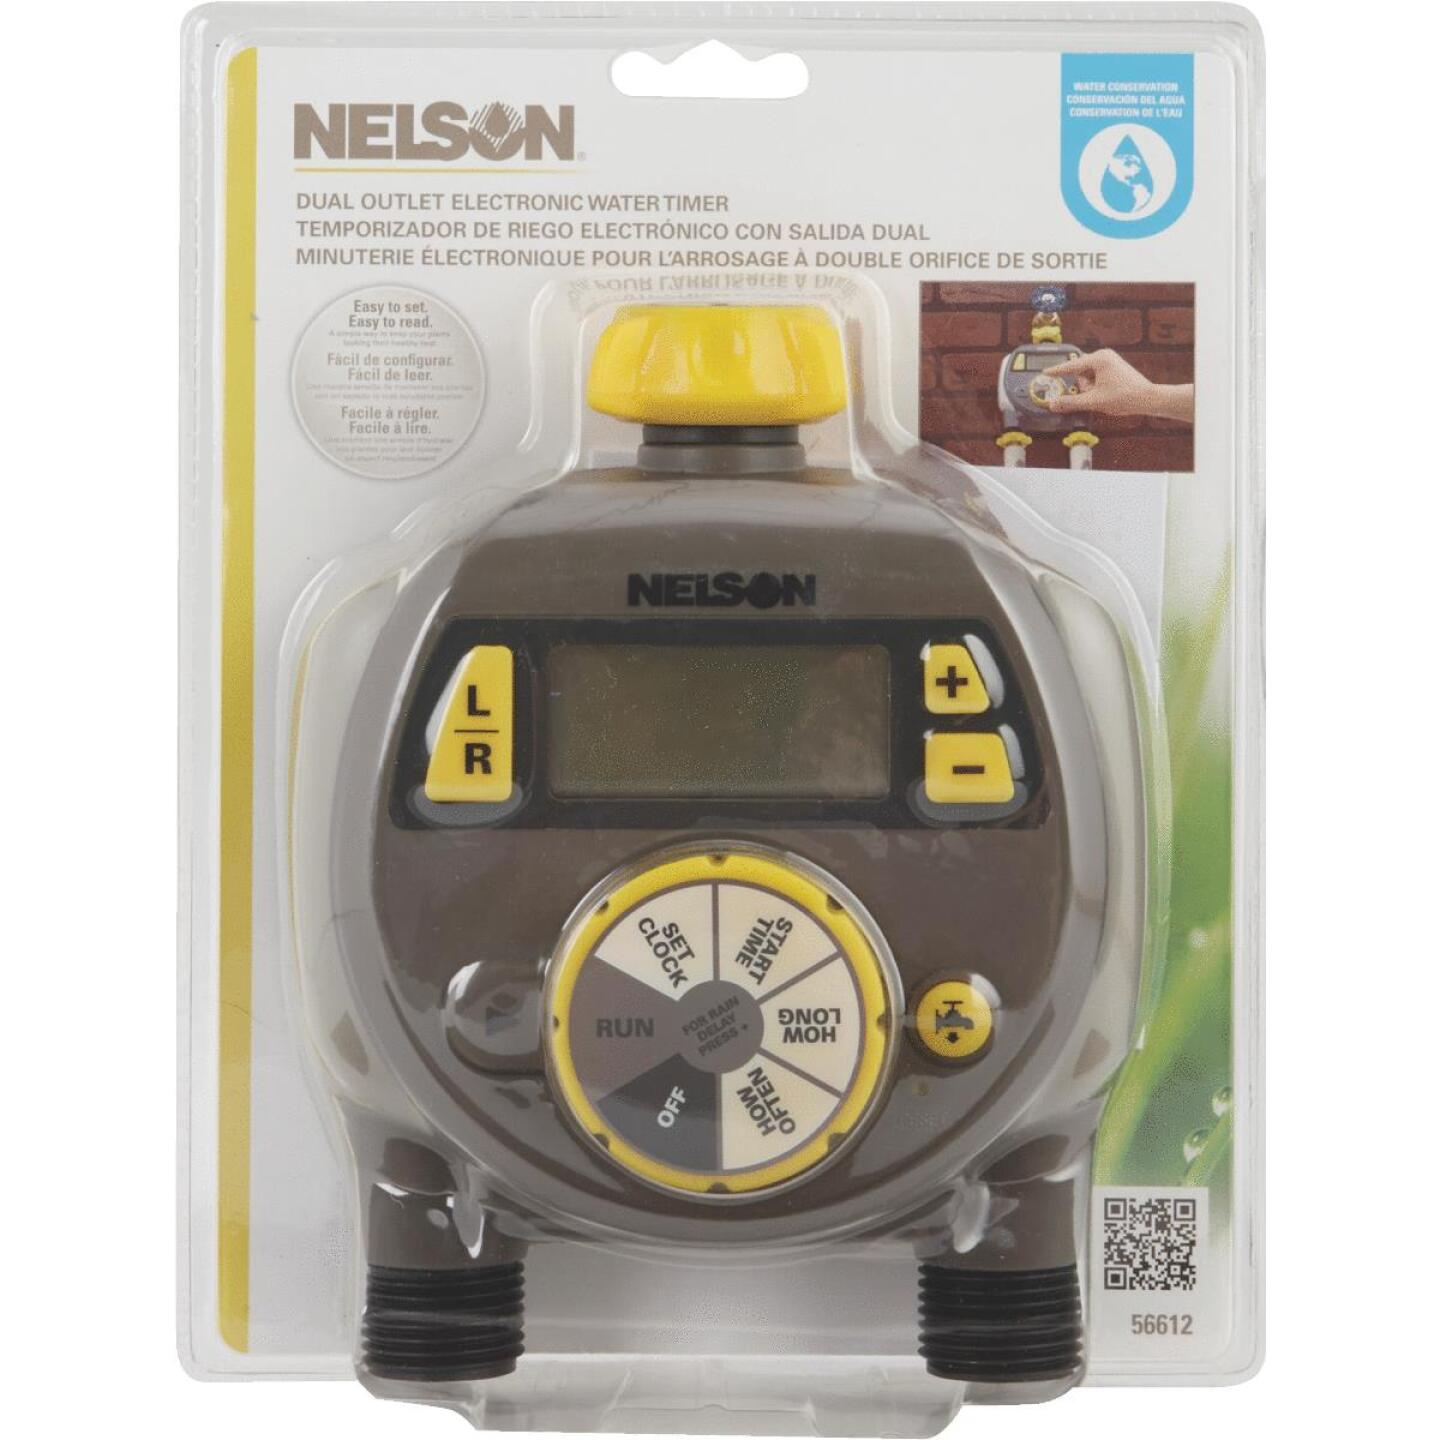 Nelson Electronic Dual Outlet Watering Timer Image 5